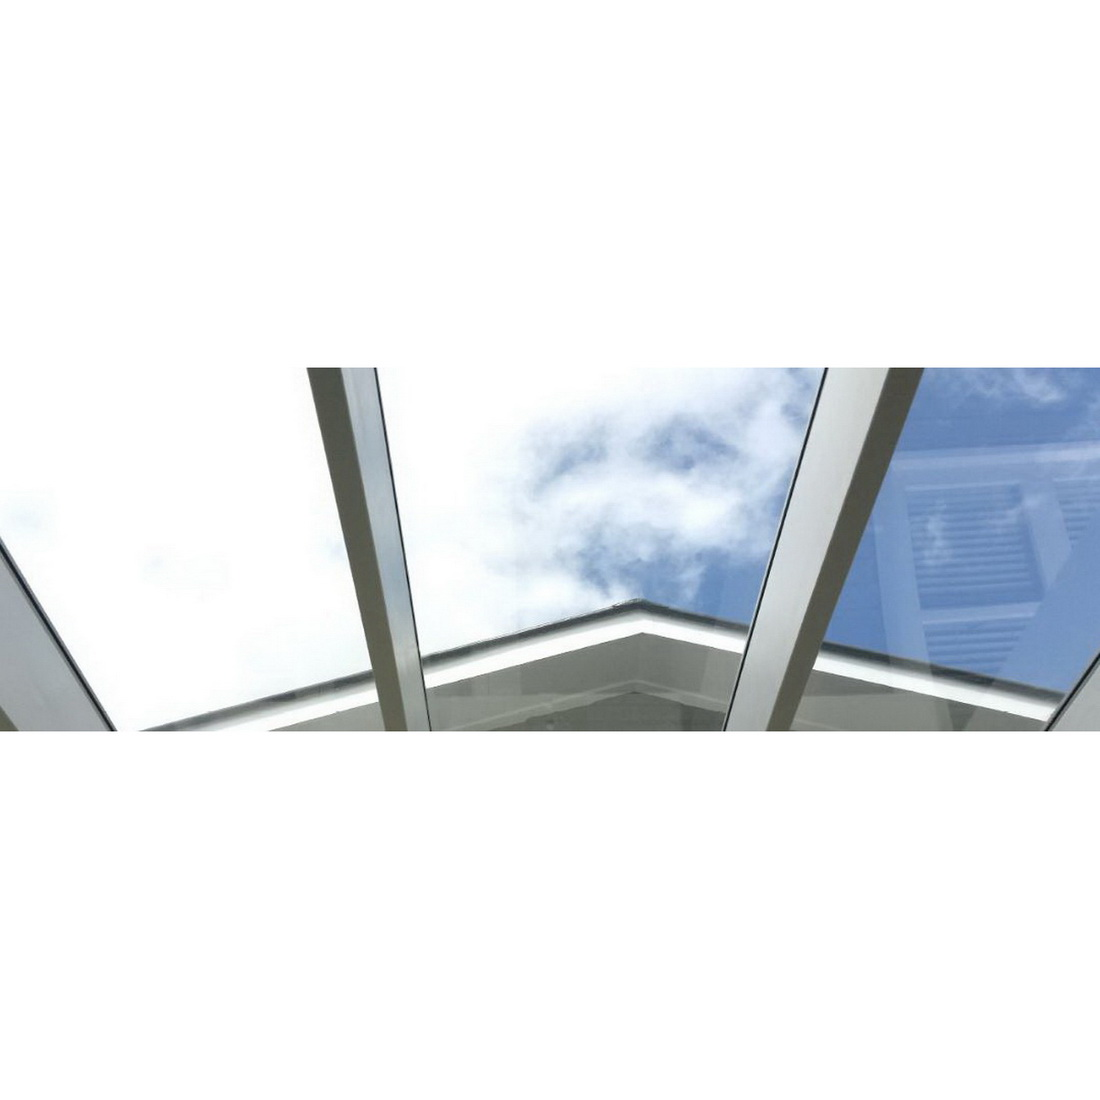 CLEARVUE Roofing Panel 5100 x 586 x 6mm Clear CLV-06.0-CLR-5100X6